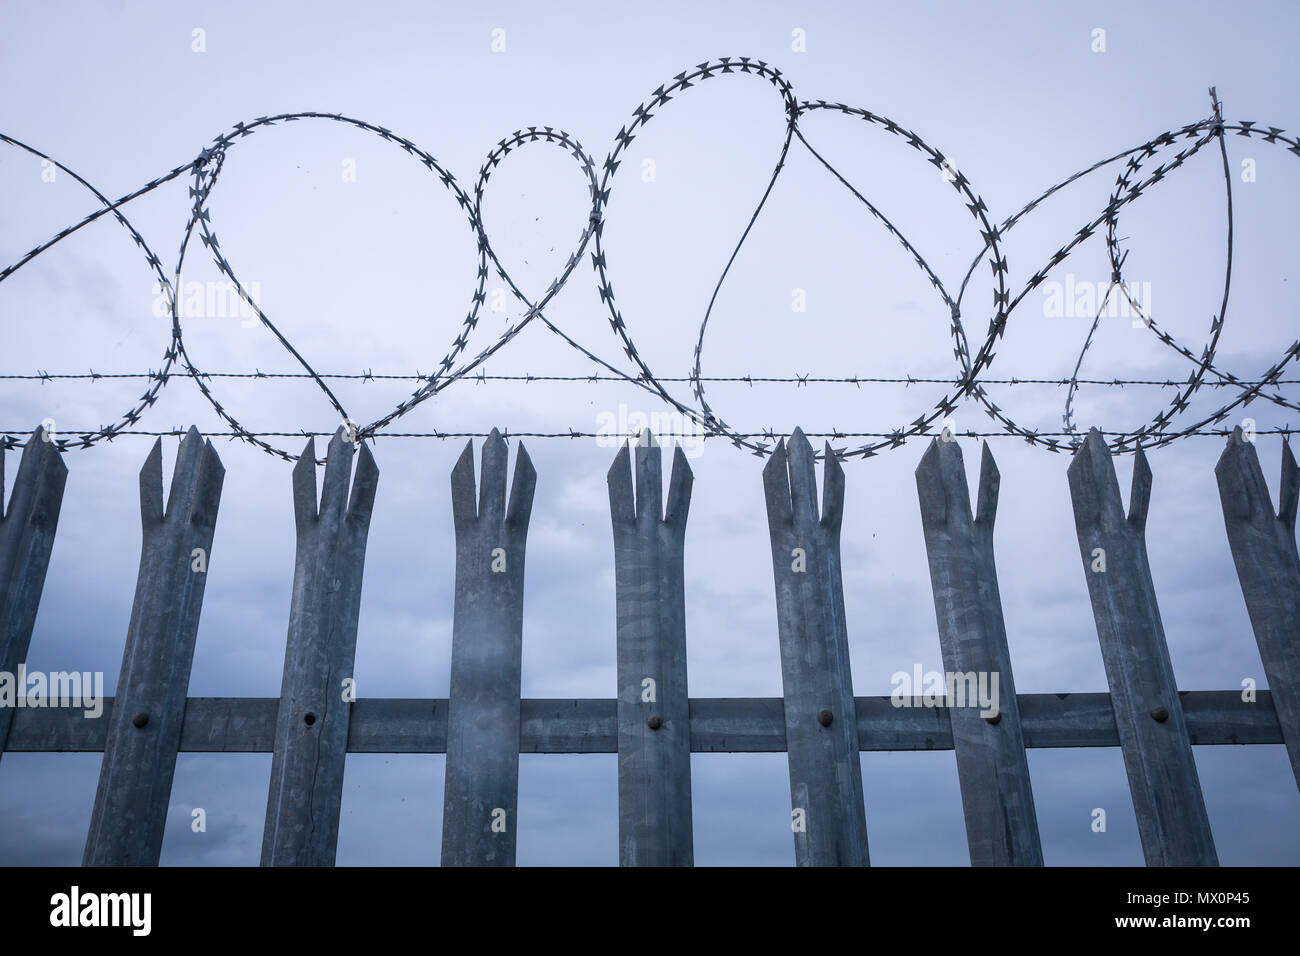 Barbwire on top of a fence - Stock Image